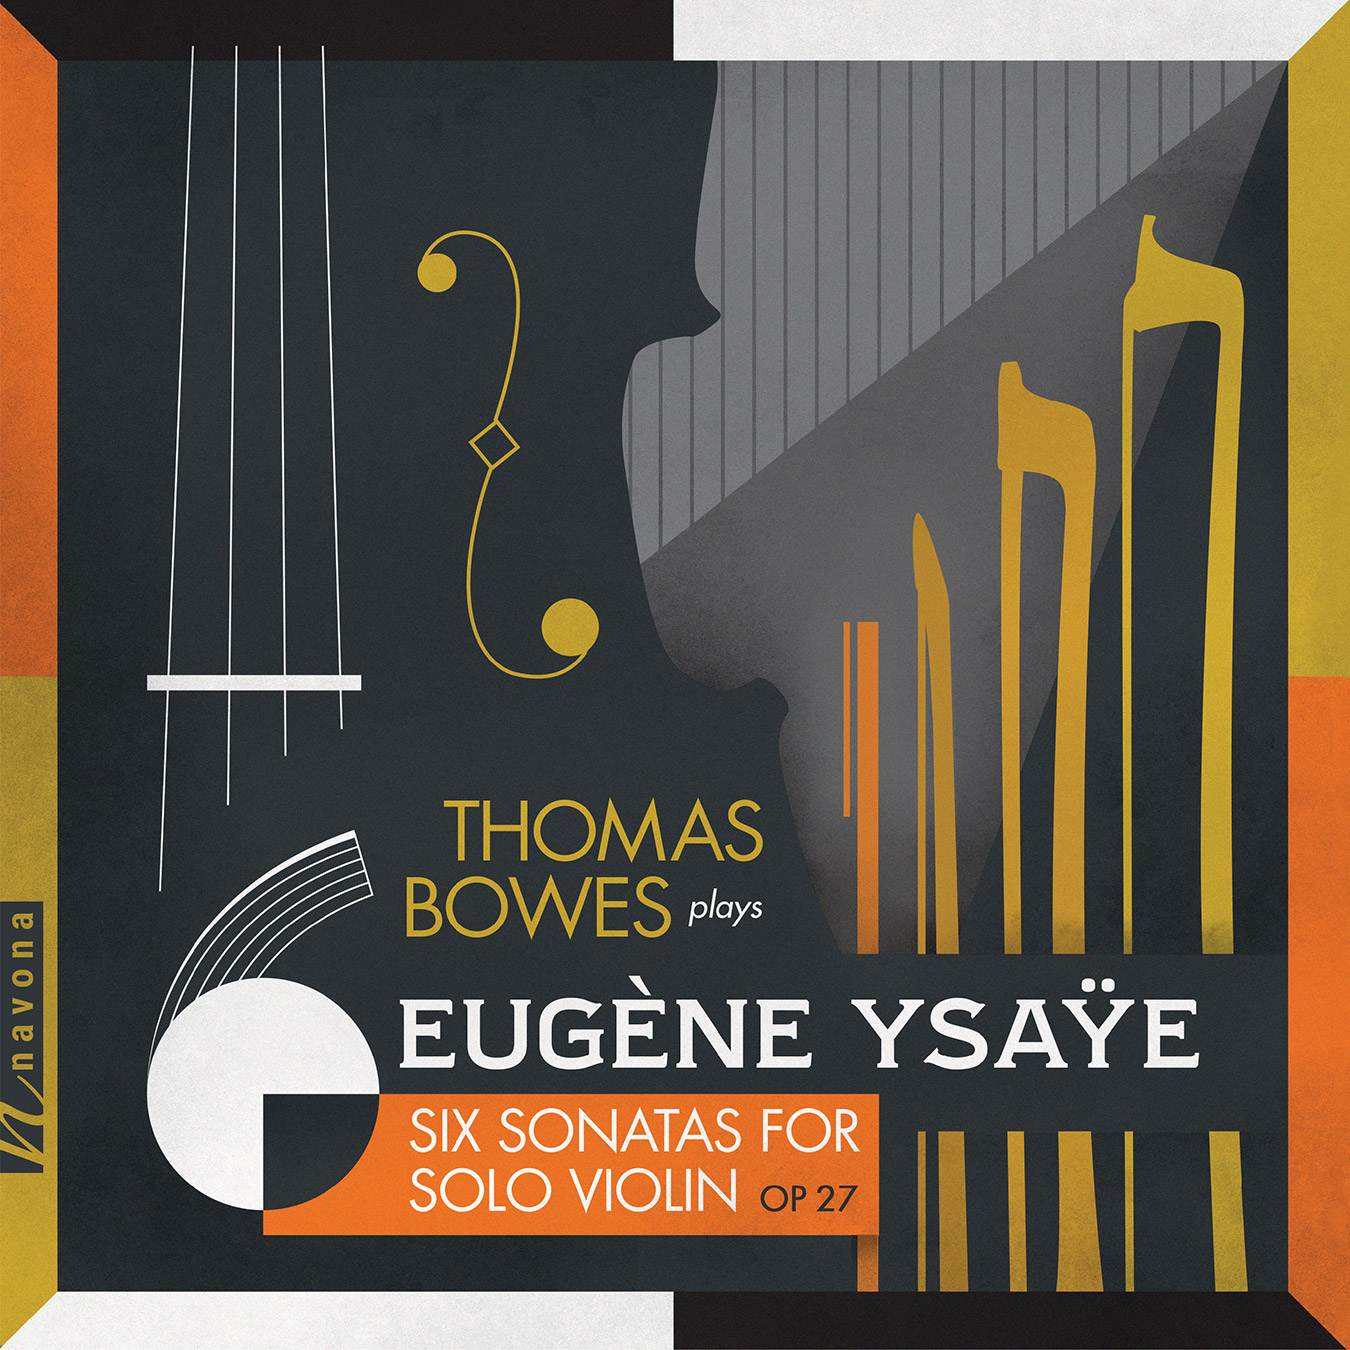 Eugene Ysaye - album cover